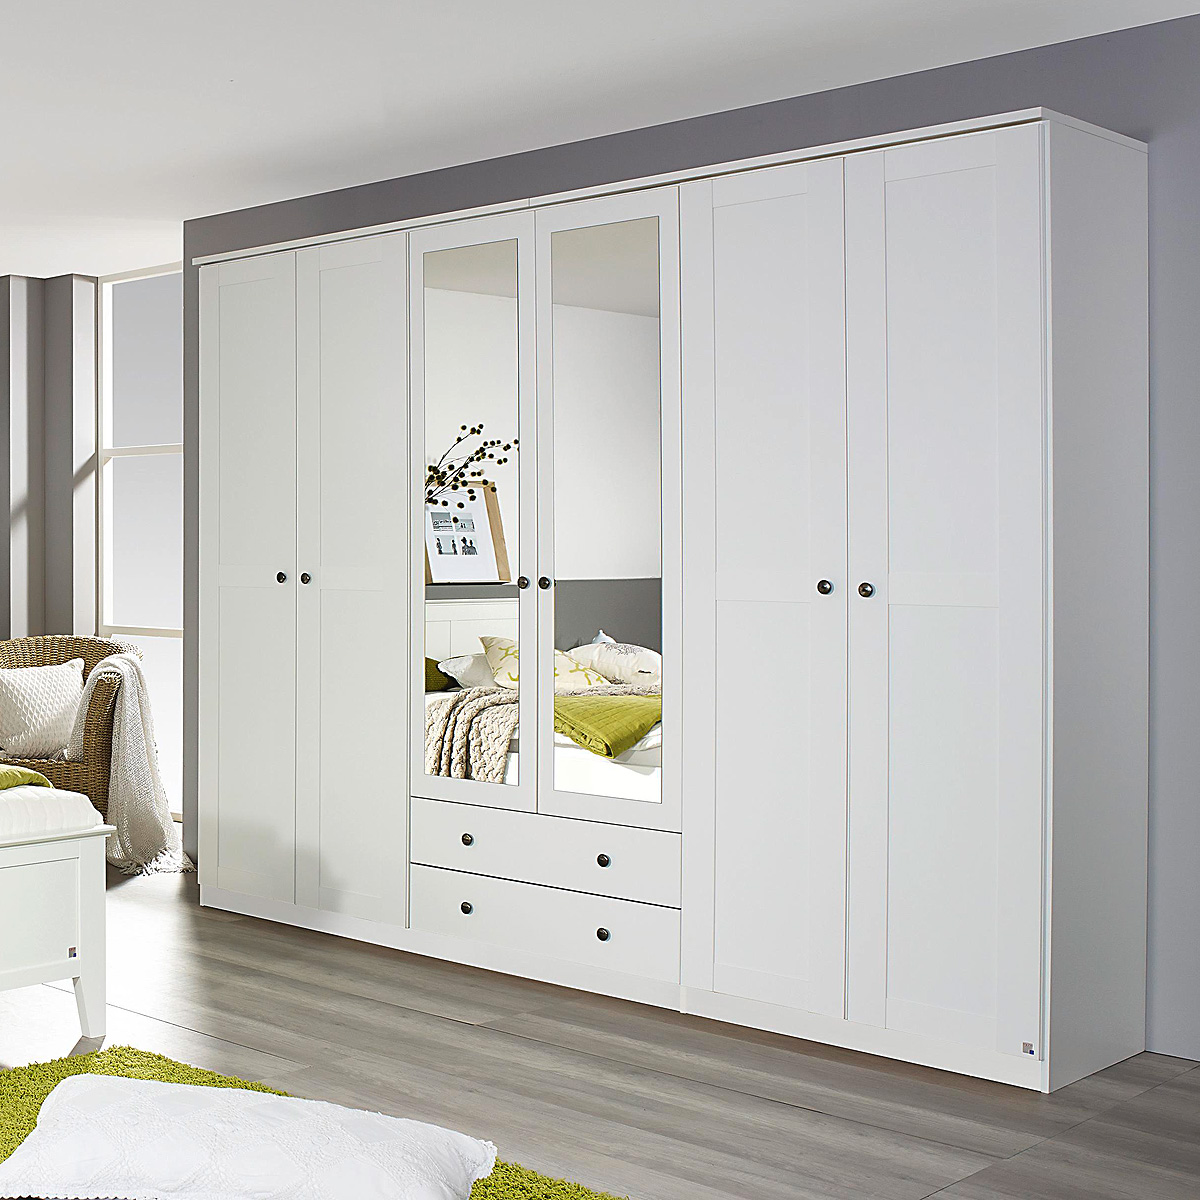 schrank mit vorhang wandschrank odeon schrank kleiderschrank akazie mit vorhang das beste von. Black Bedroom Furniture Sets. Home Design Ideas